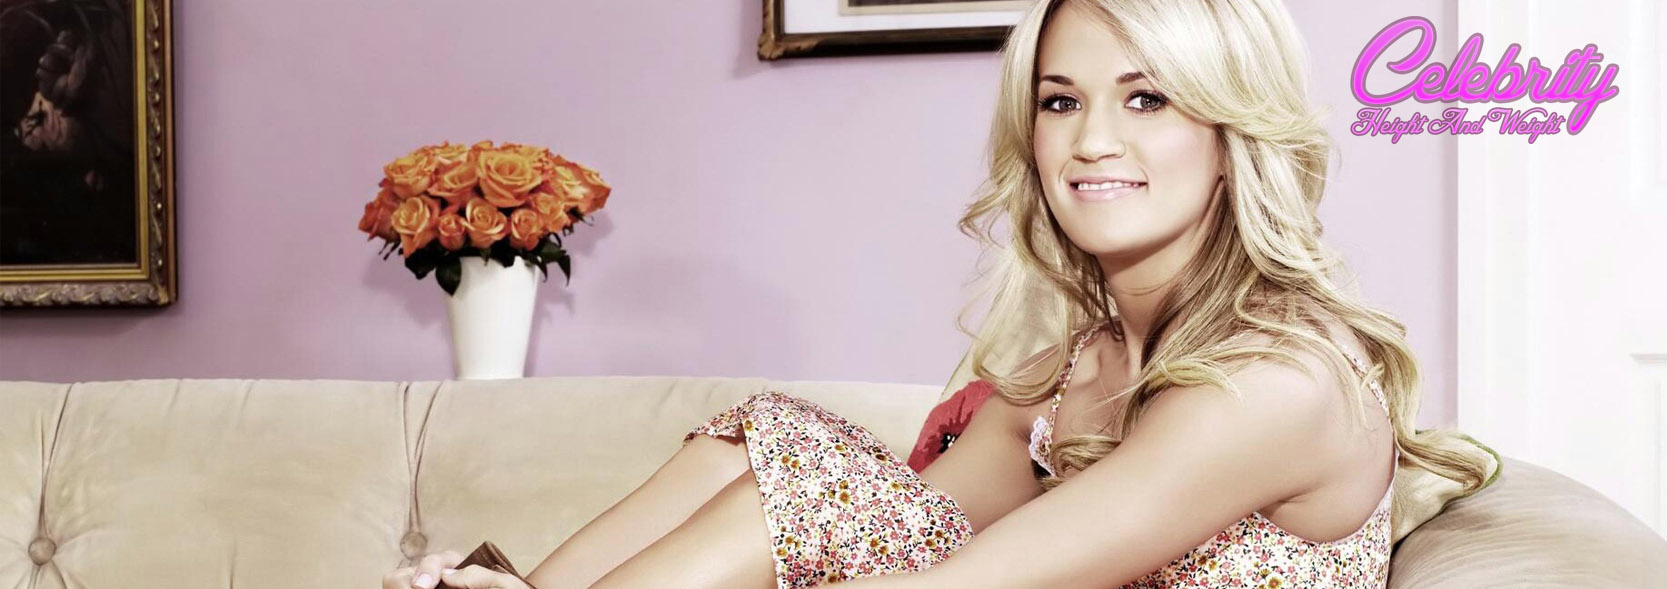 ad60c6a5cf6f1 Carrie Underwood Height and Wight Measurements. Carrie Underwood Boob Size